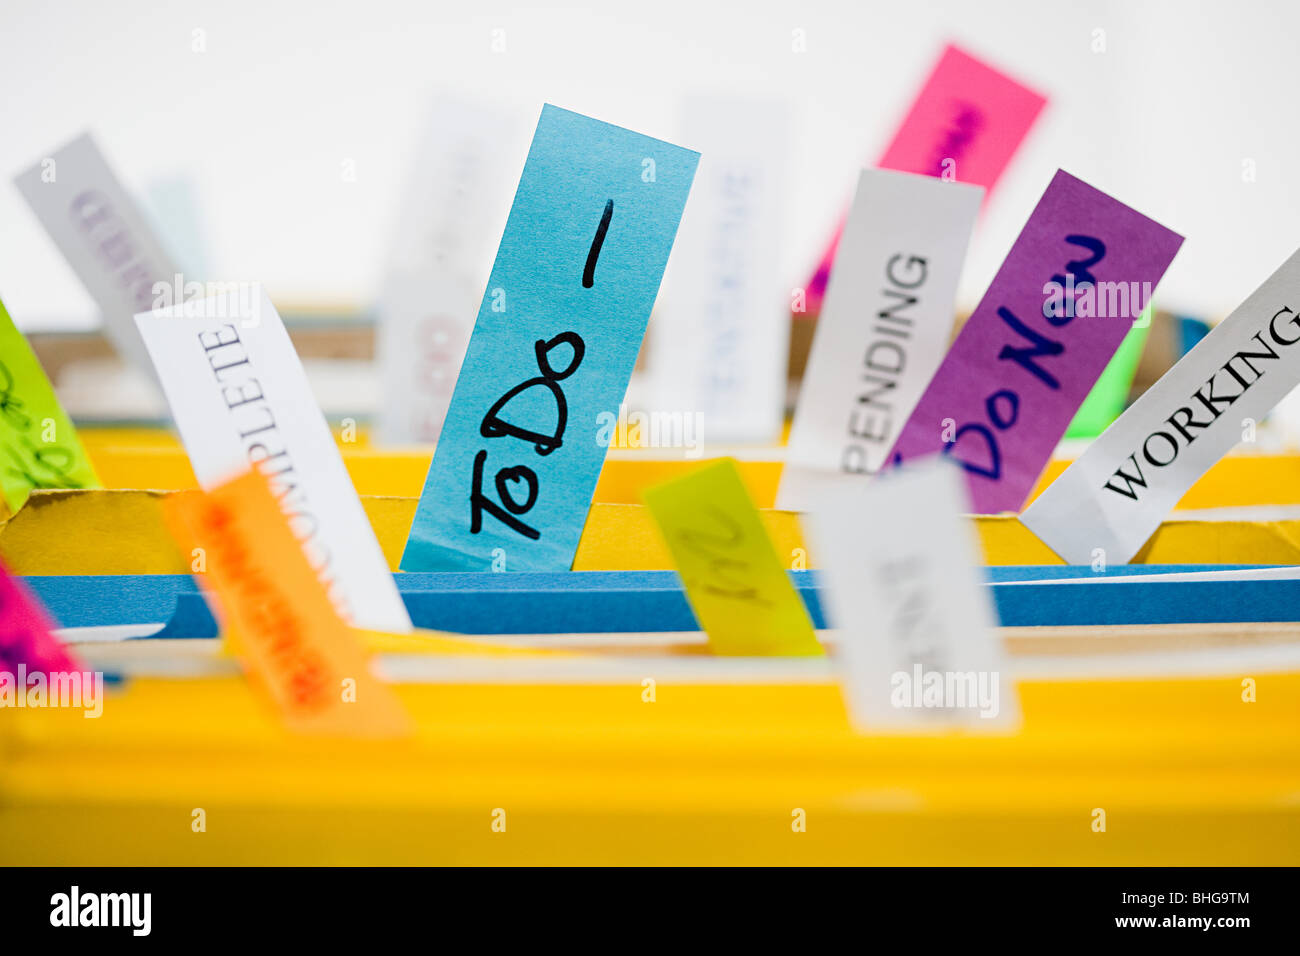 Files with labels - Stock Image